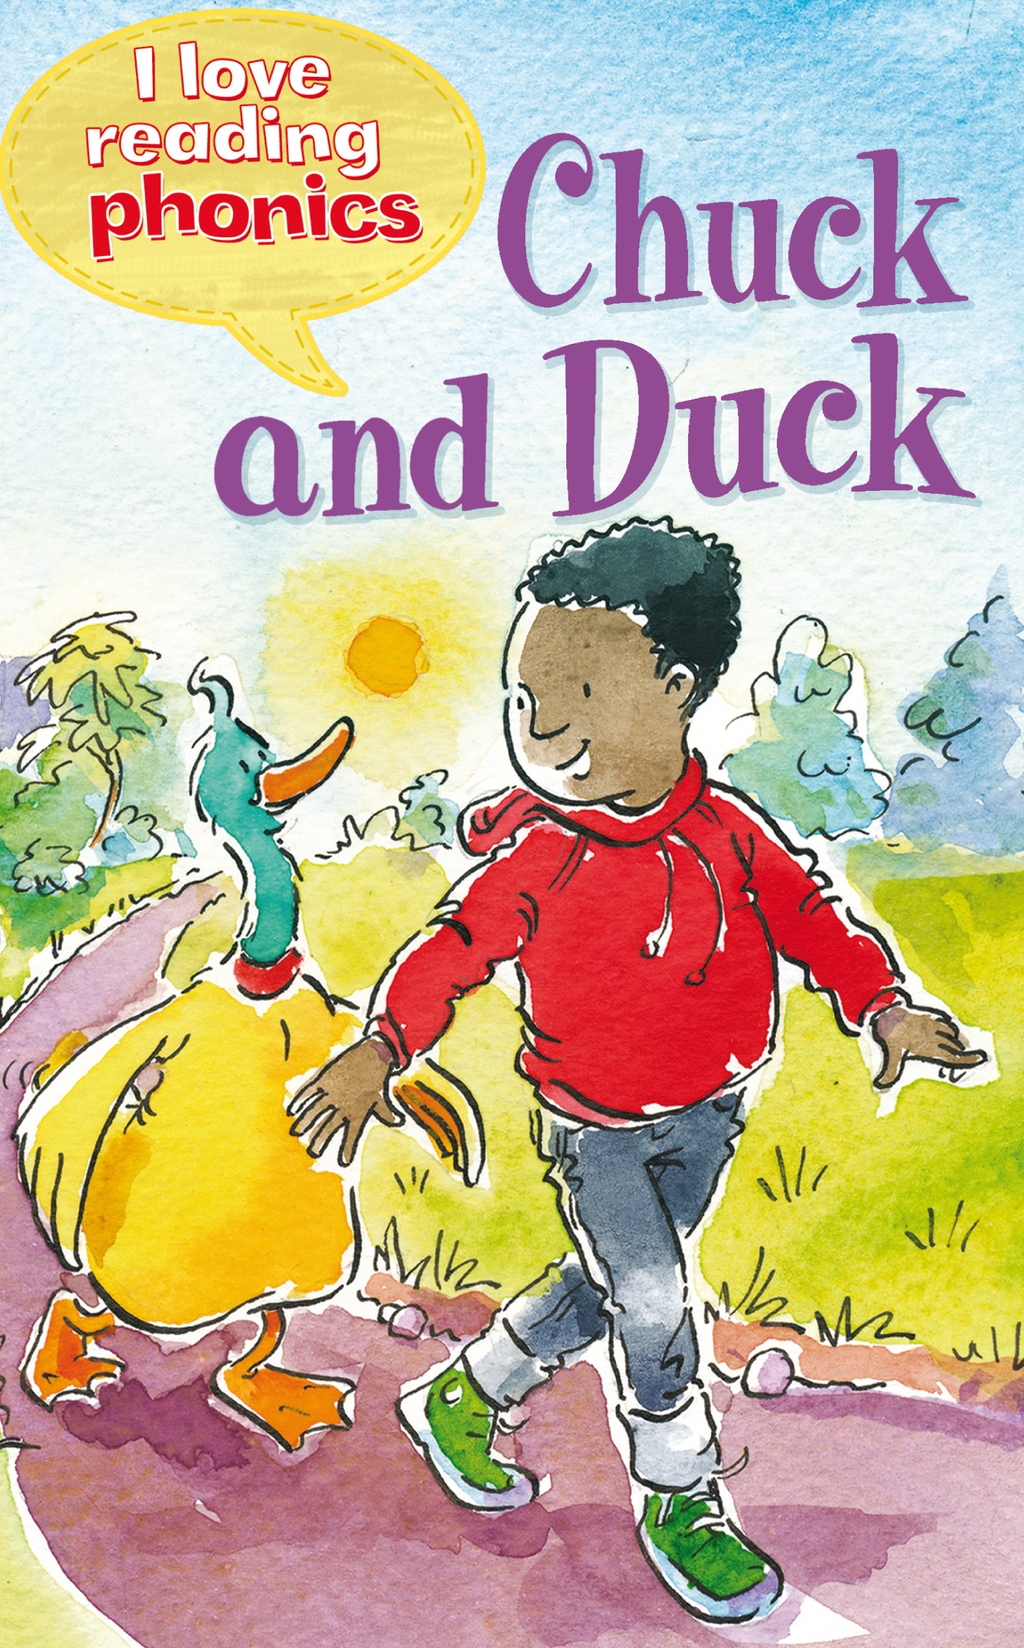 Chuck & Duck (I Love Reading Phonics Level 2)